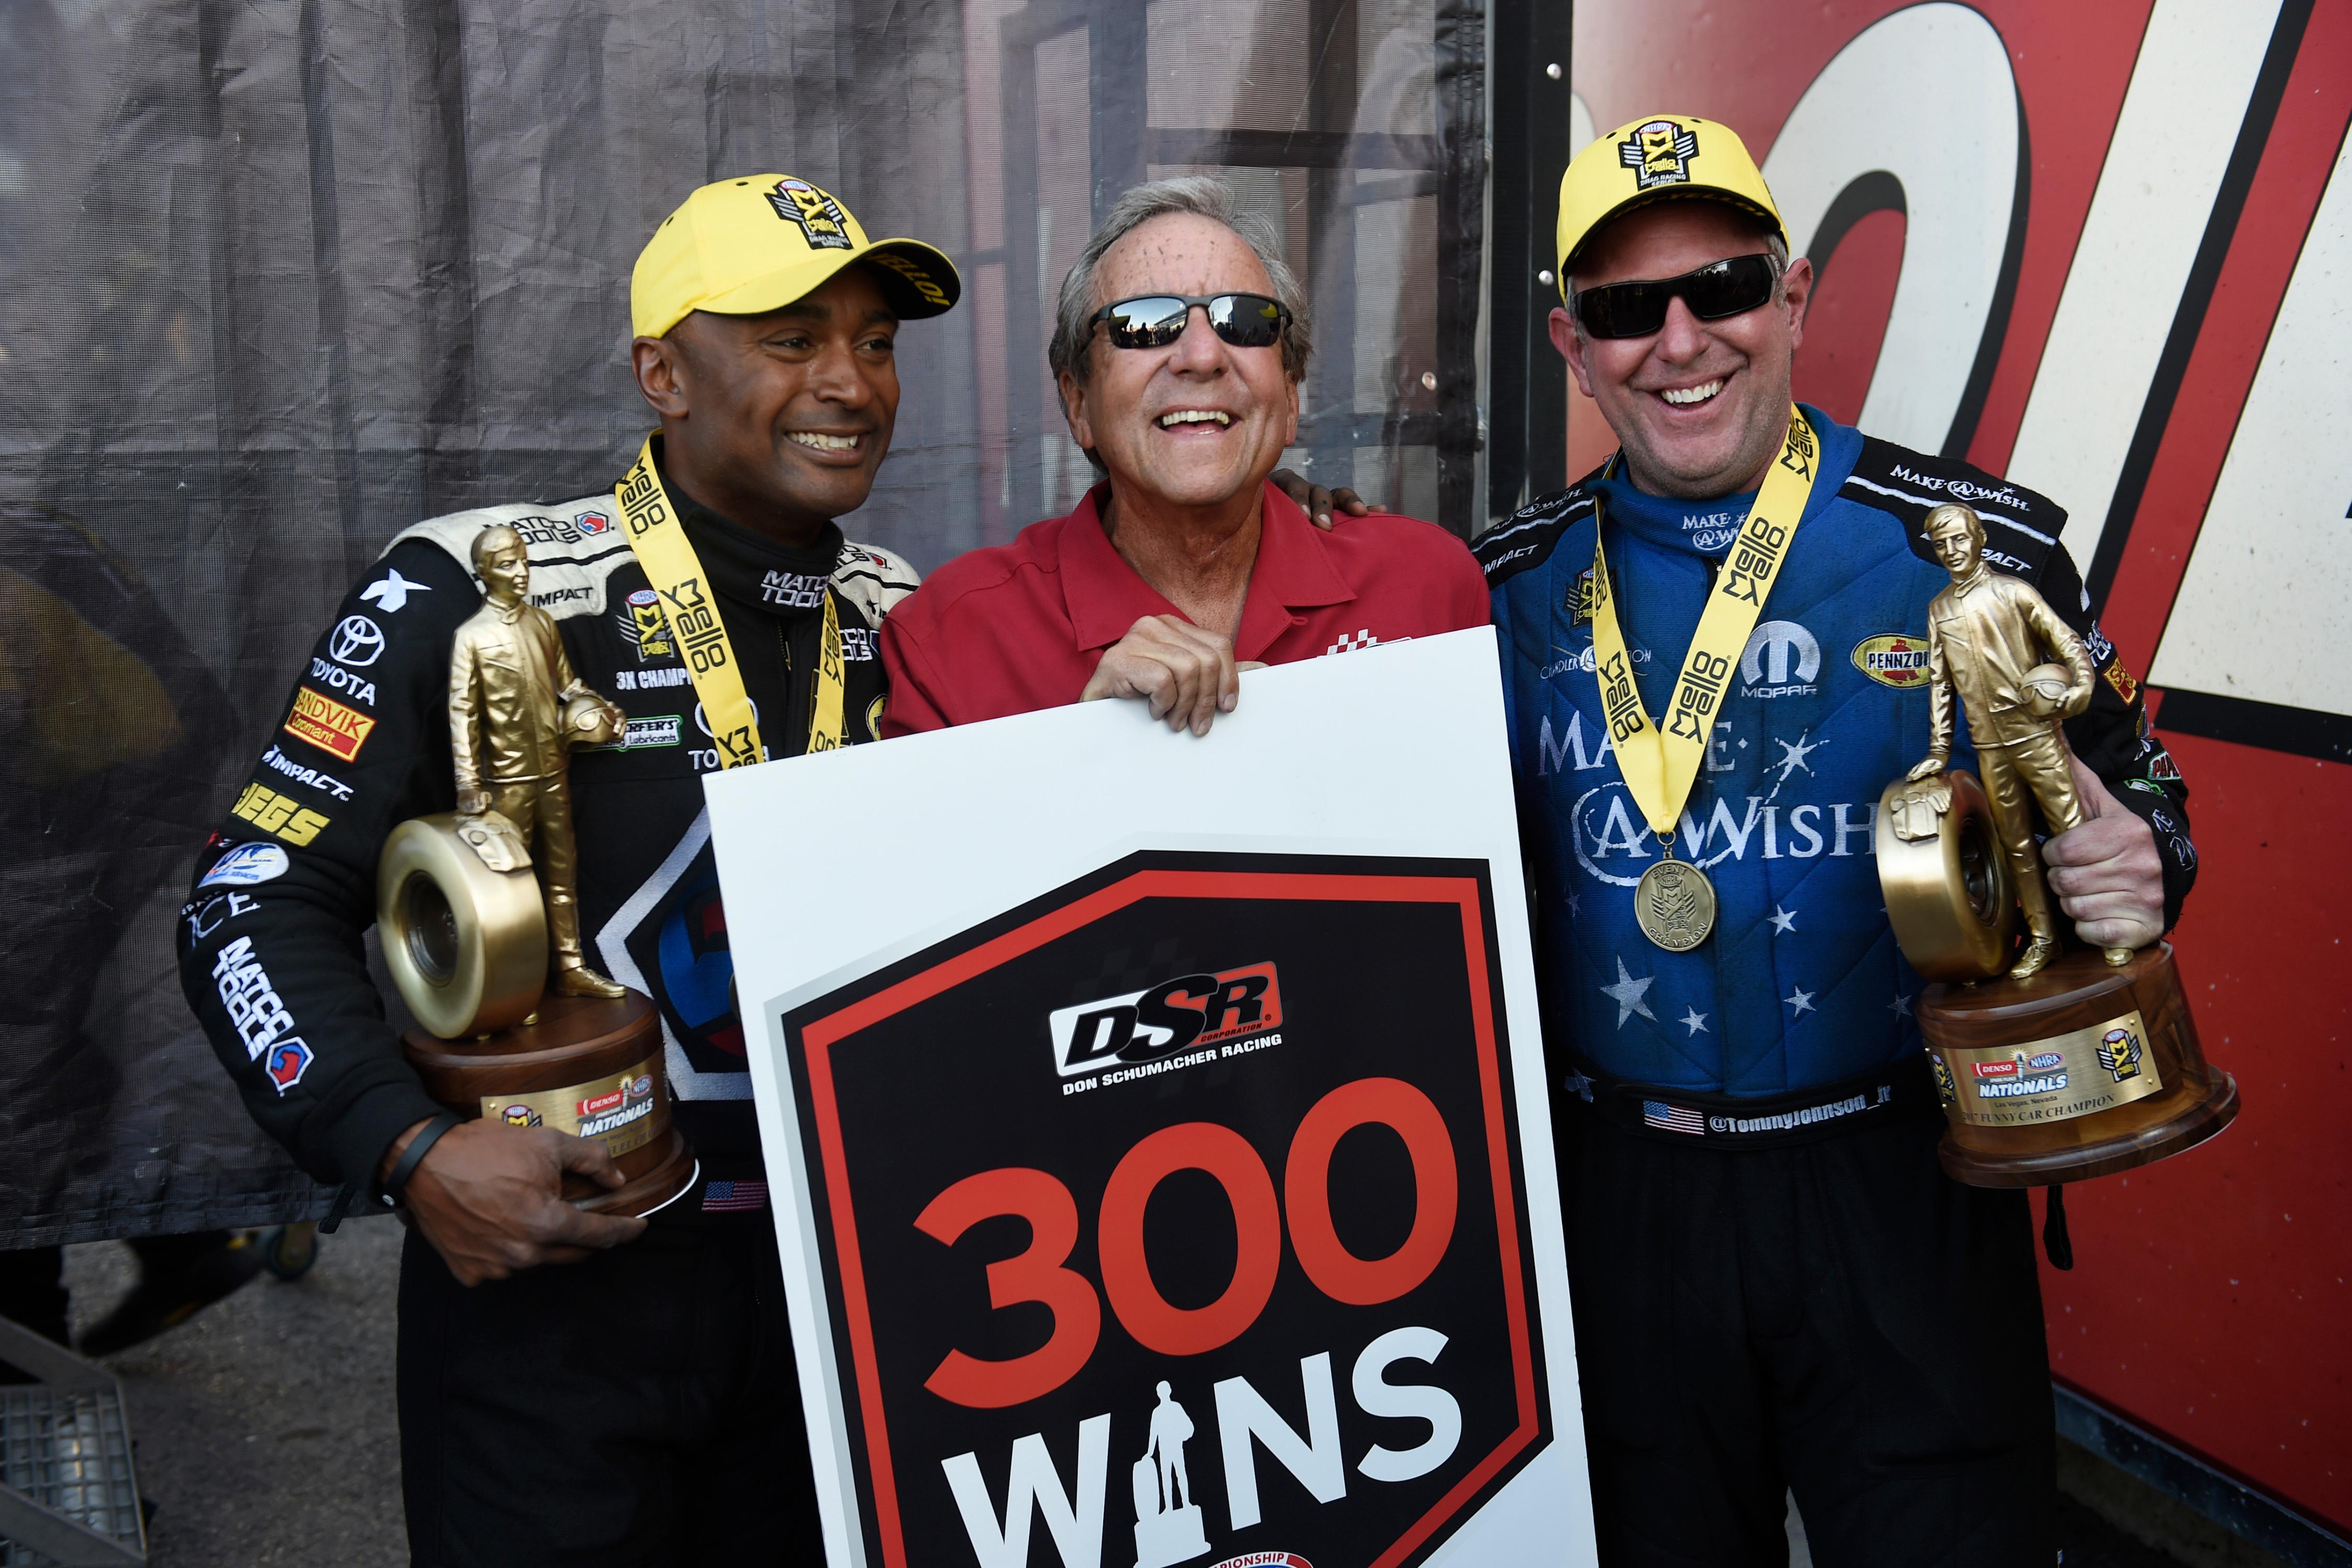 Top Fuel winner Antron Brown, left, and Funny Car winner Tommy Johnson Jr., right, pose for a photo with the owner of their teams Don Schumacher after giving Schumacher his 299th and 300th career victory during the NHRA DENSO Spark Plug Nationals at The Strip at the Las Vegas Motor Speedway Sunday, April 2, 2017. (Sam Morris/Las Vegas News Bureau)